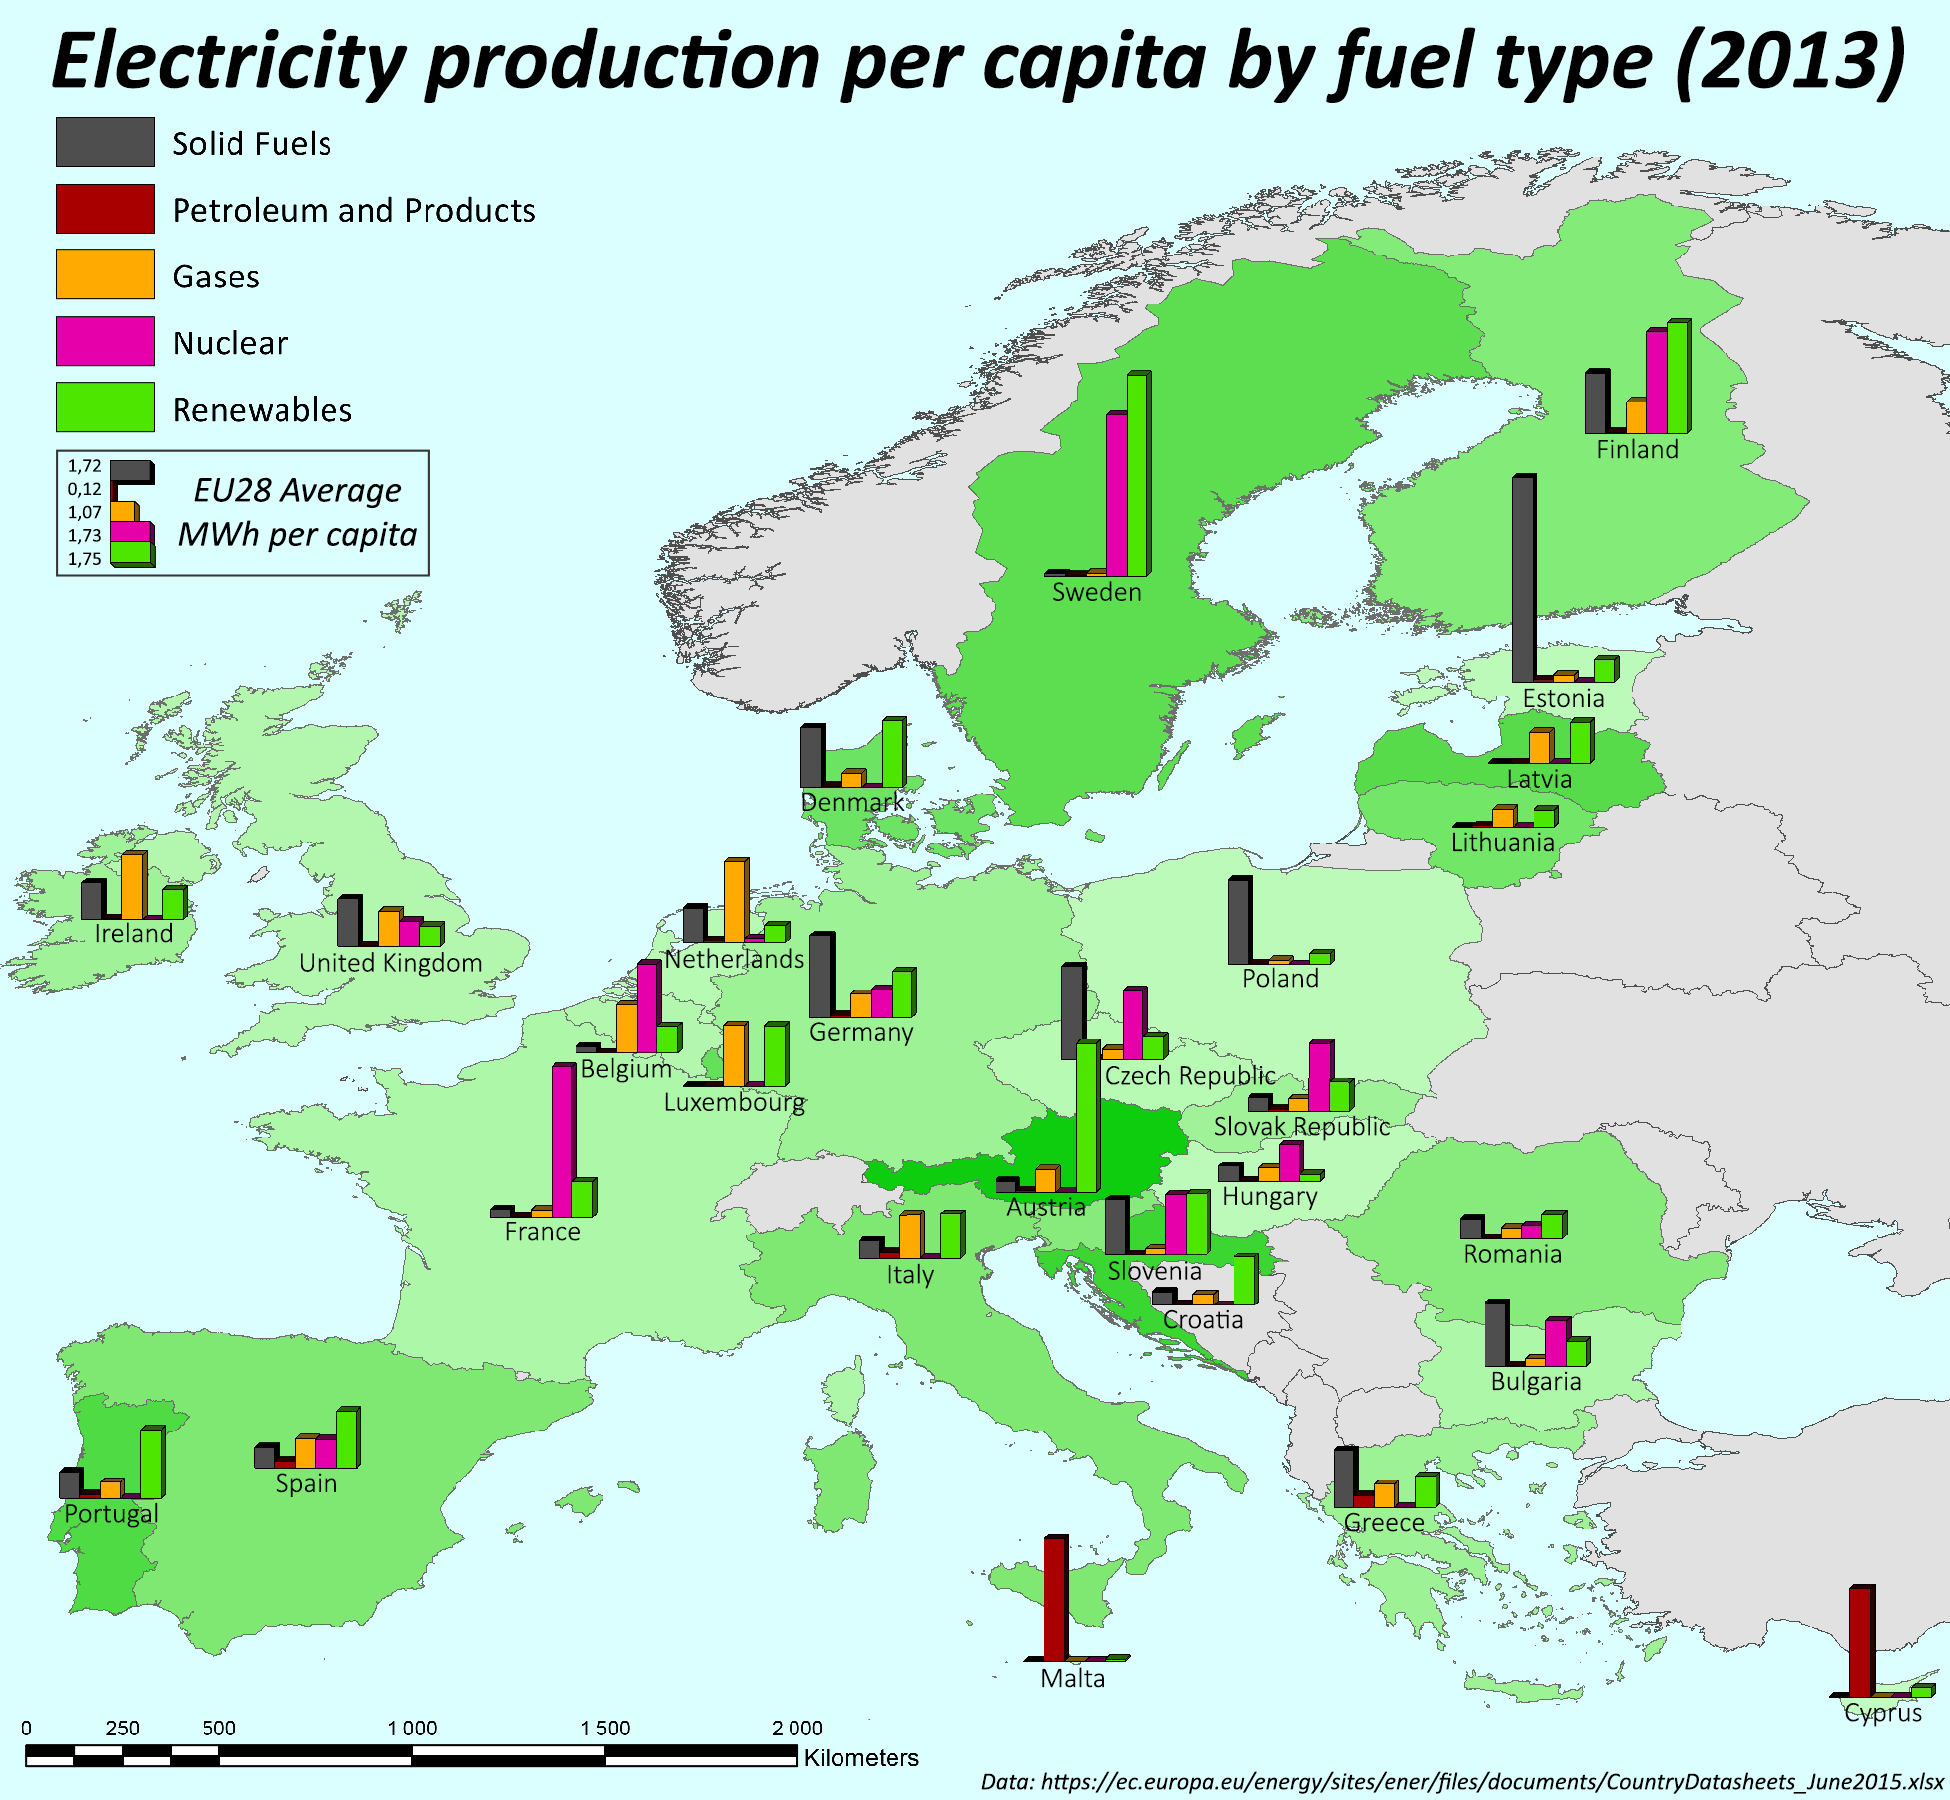 Europe's Electricity Production by Country and Fuel Type